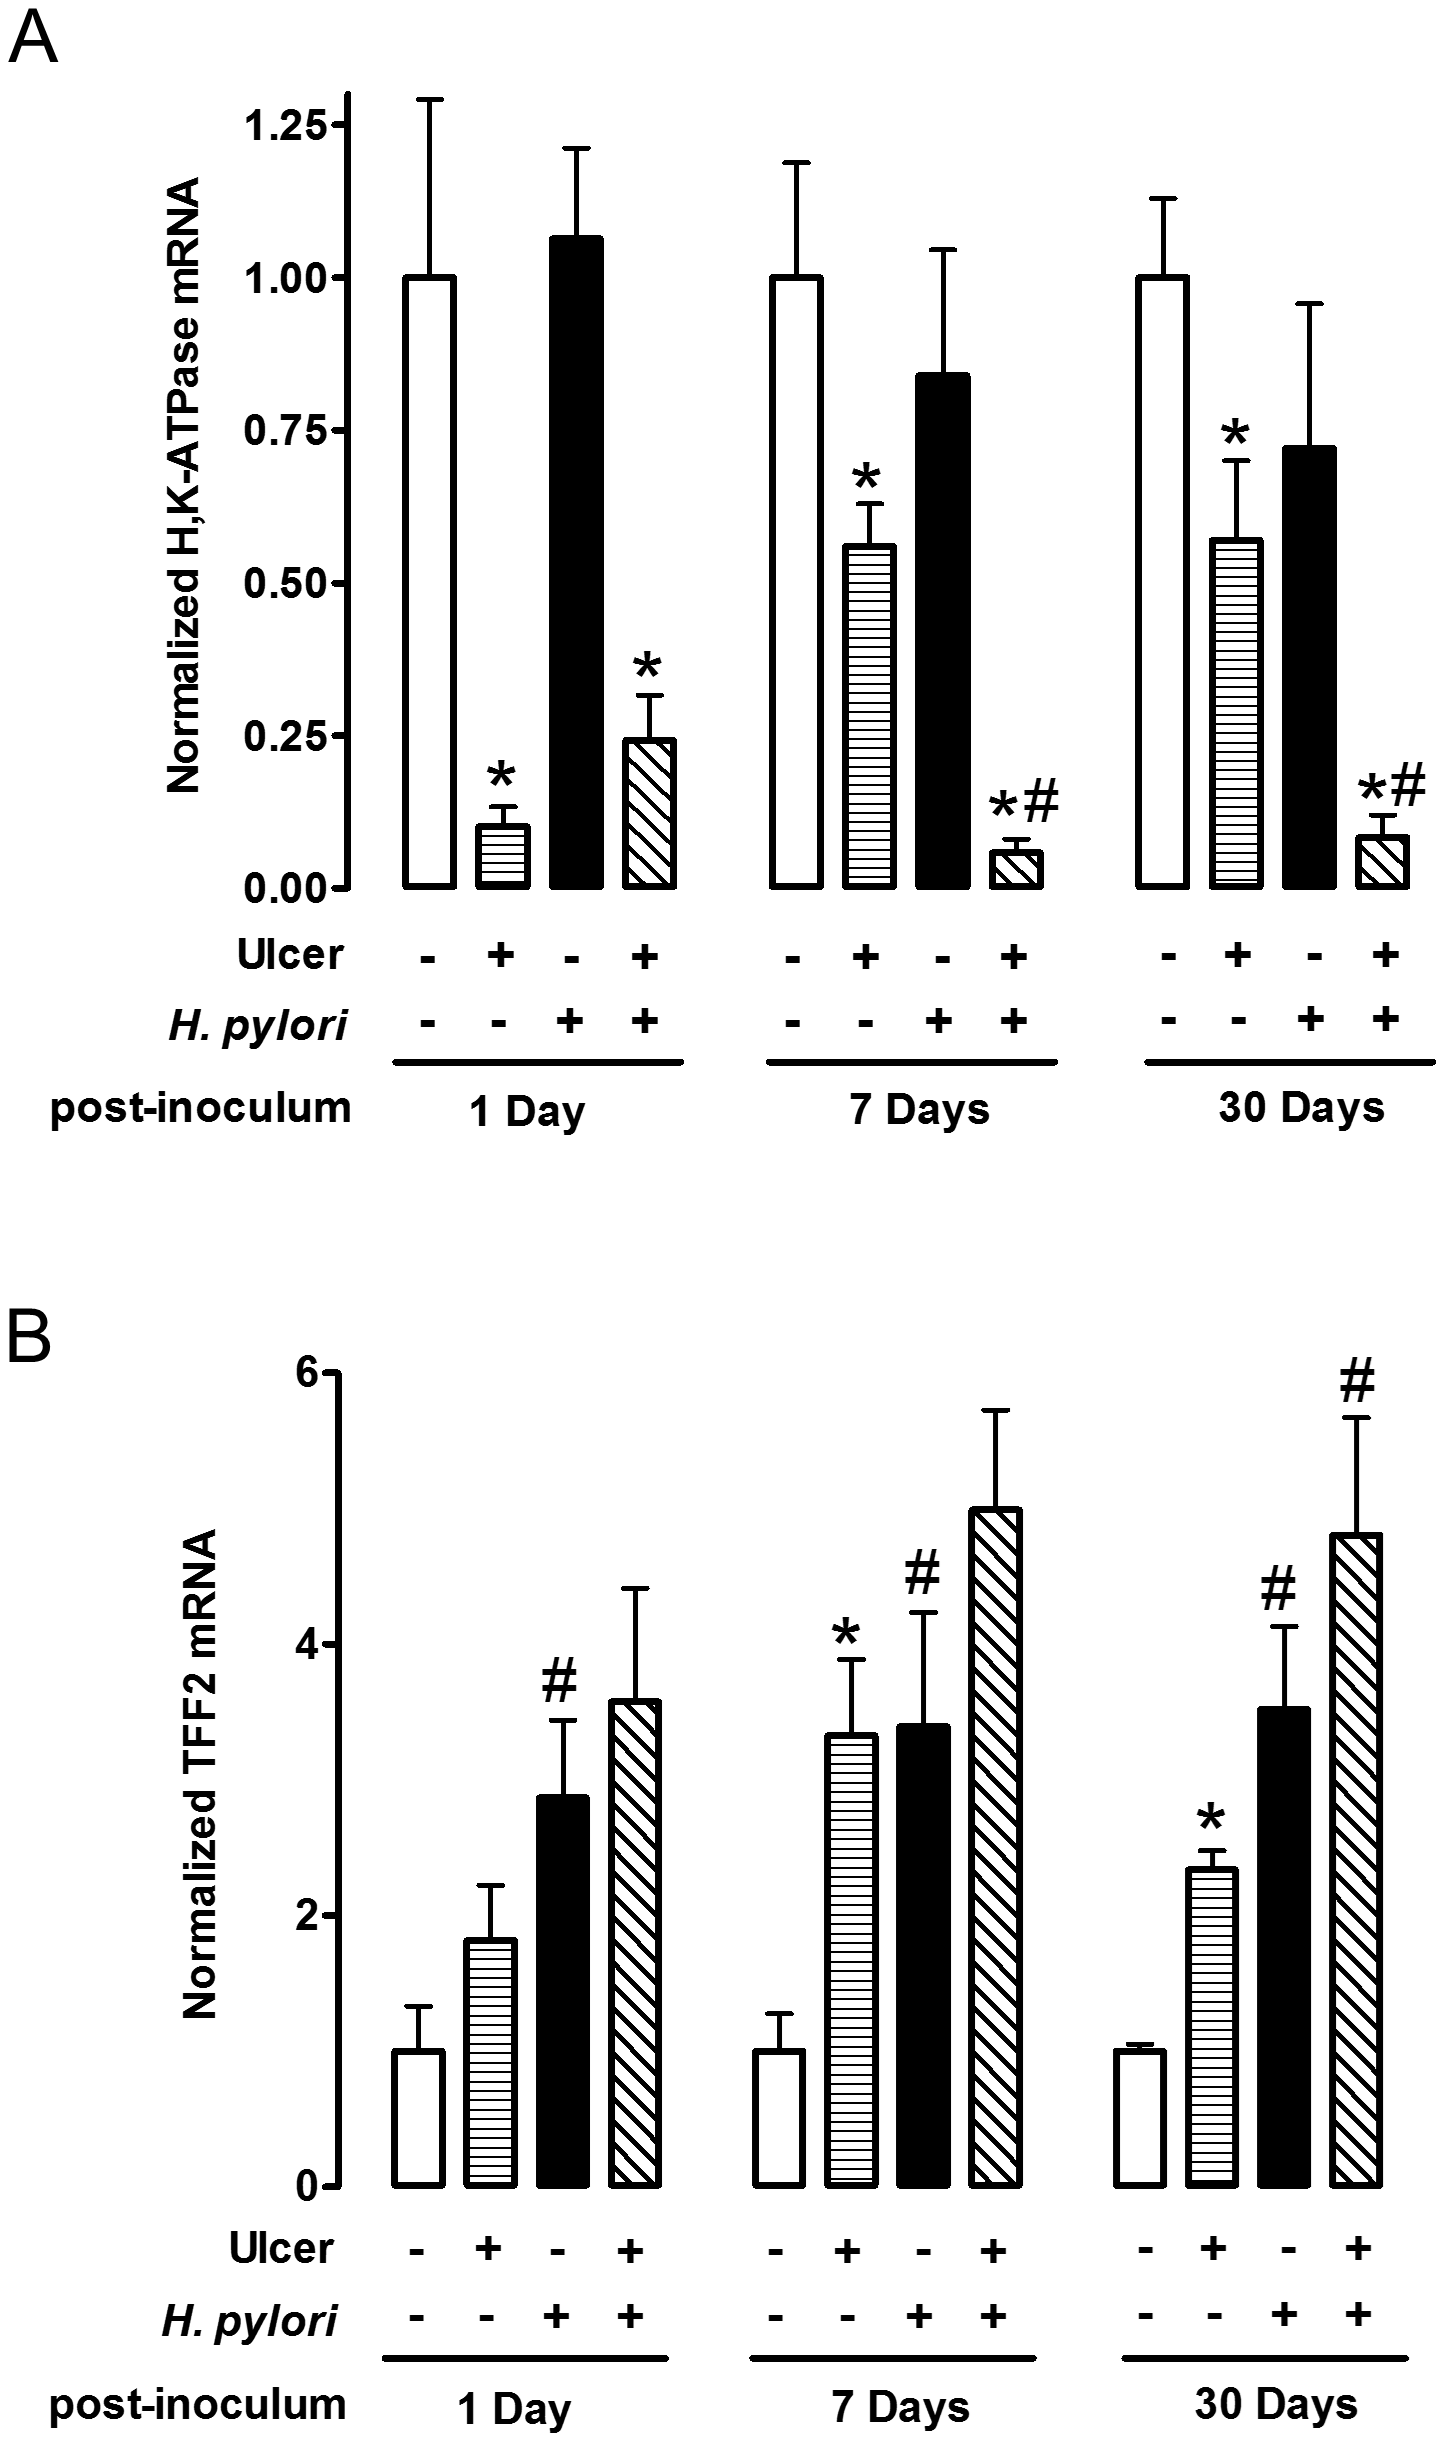 Effect of <i>H. pylori</i> on gene expression change during ulcer healing.